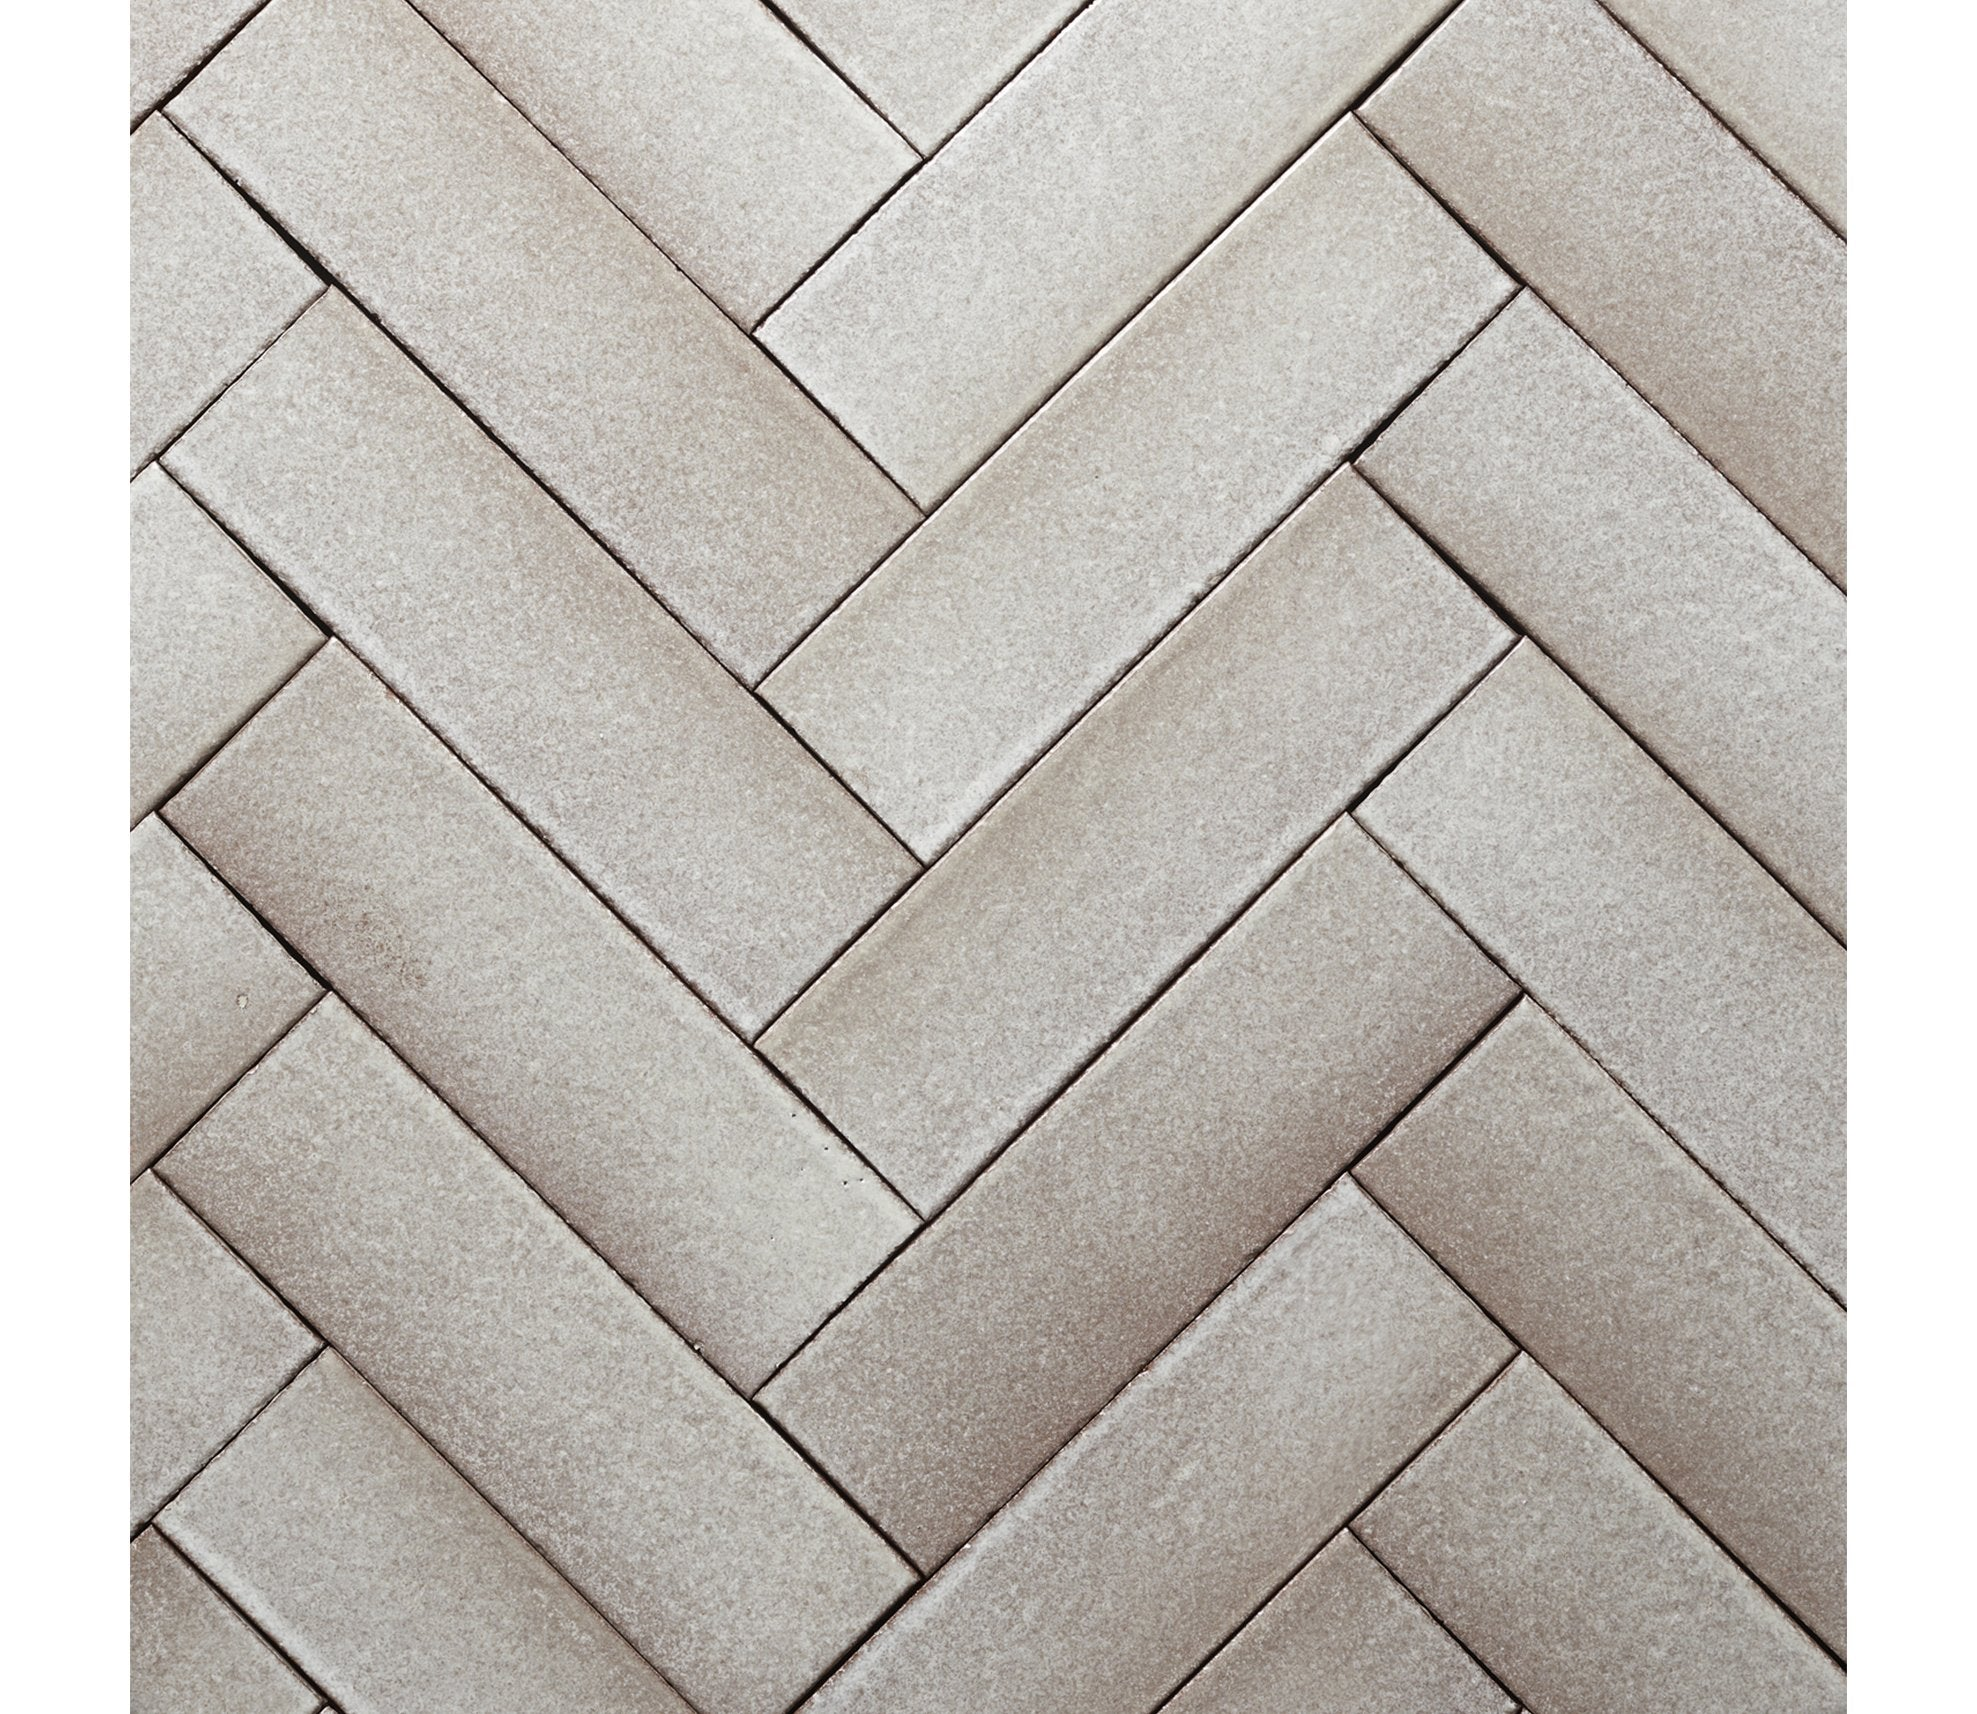 Terra Firma Glazed Bricks Product Image 40